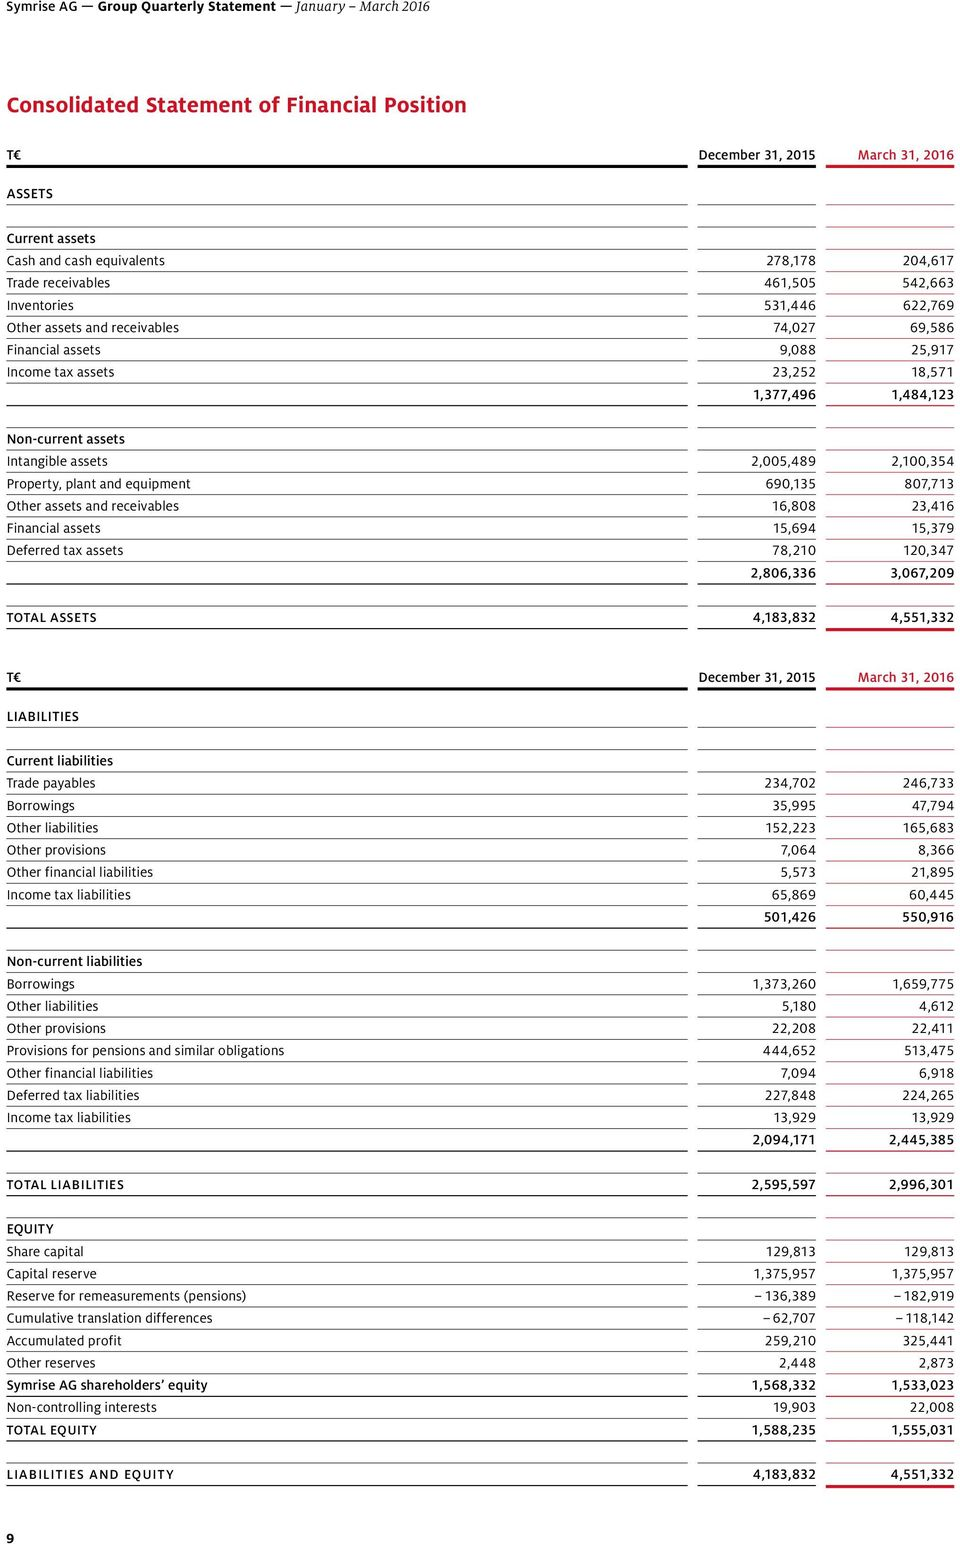 plant and equipment 690,135 807,713 Other assets and receivables 16,808 23,416 Financial assets 15,694 15,379 Deferred tax assets 78,210 120,347 2,806,336 3,067,209 TOTAL ASSETS 4,183,832 4,551,332 T